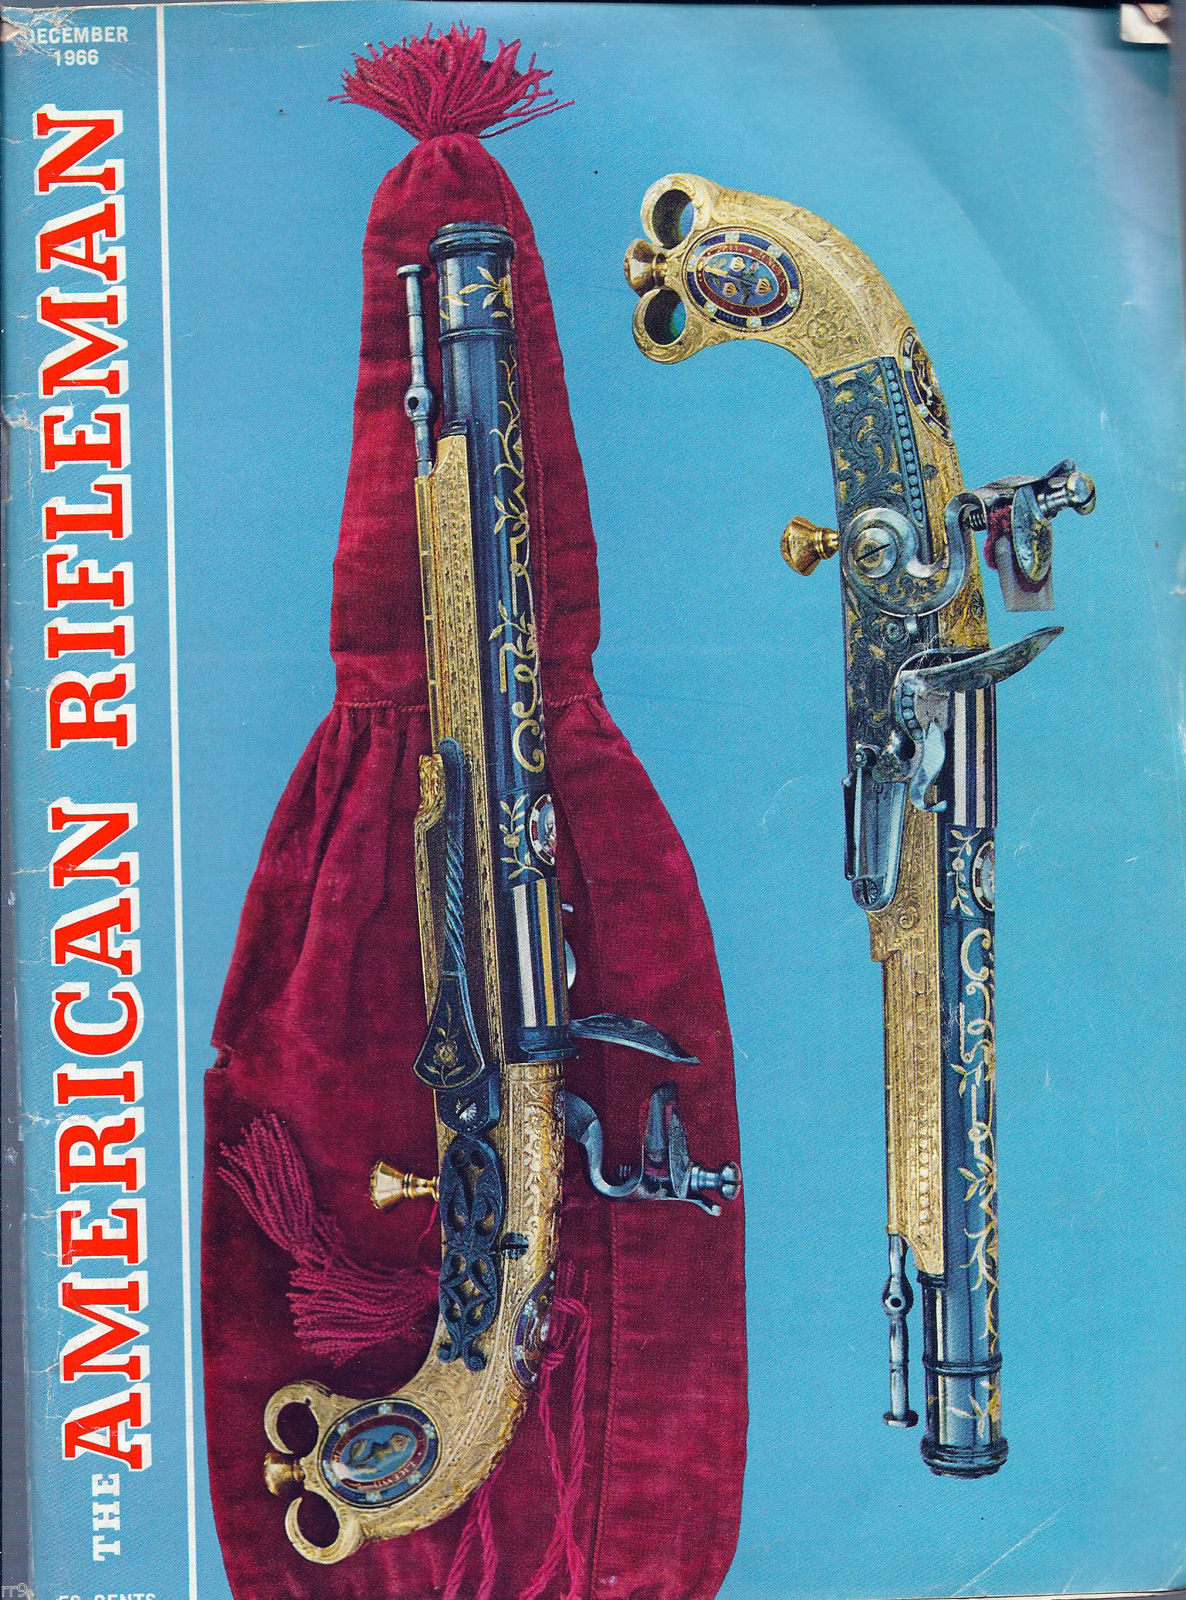 Primary image for The American Rifleman December 1966 Magazine